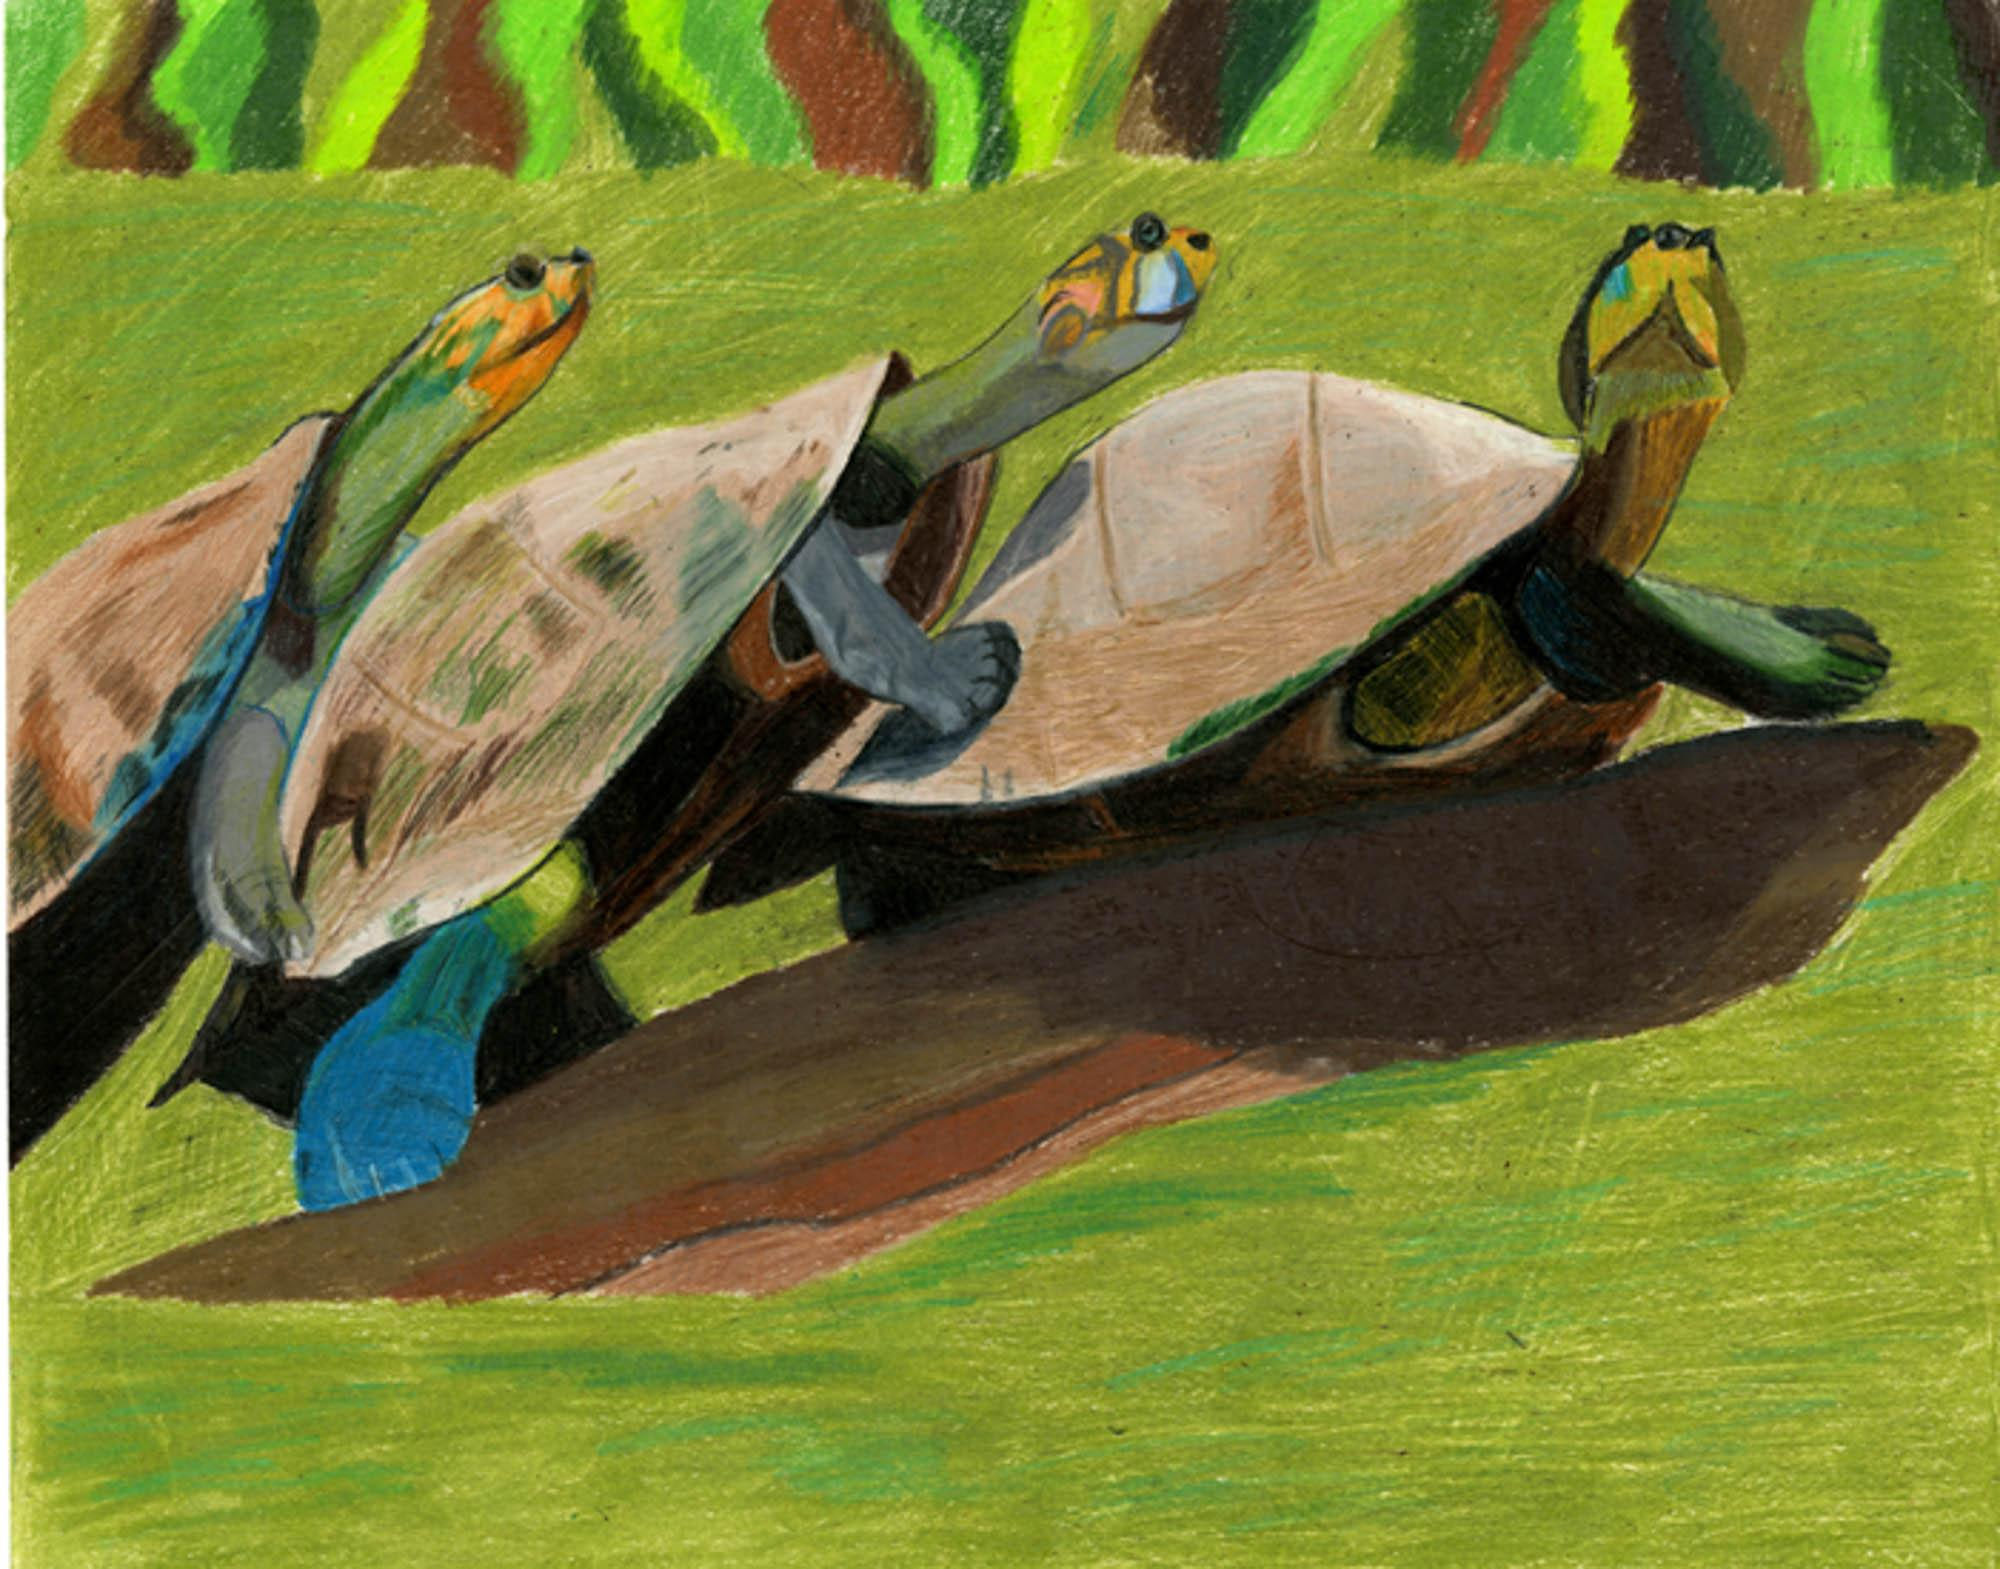 Three Turtles on a Log, Athena Marlin, age 10 Norcross, Georgia  Ska Academy of Art and Design  Teacher: Leng Chang, 2013 River of Words Art Grand Prize Winner, Category II